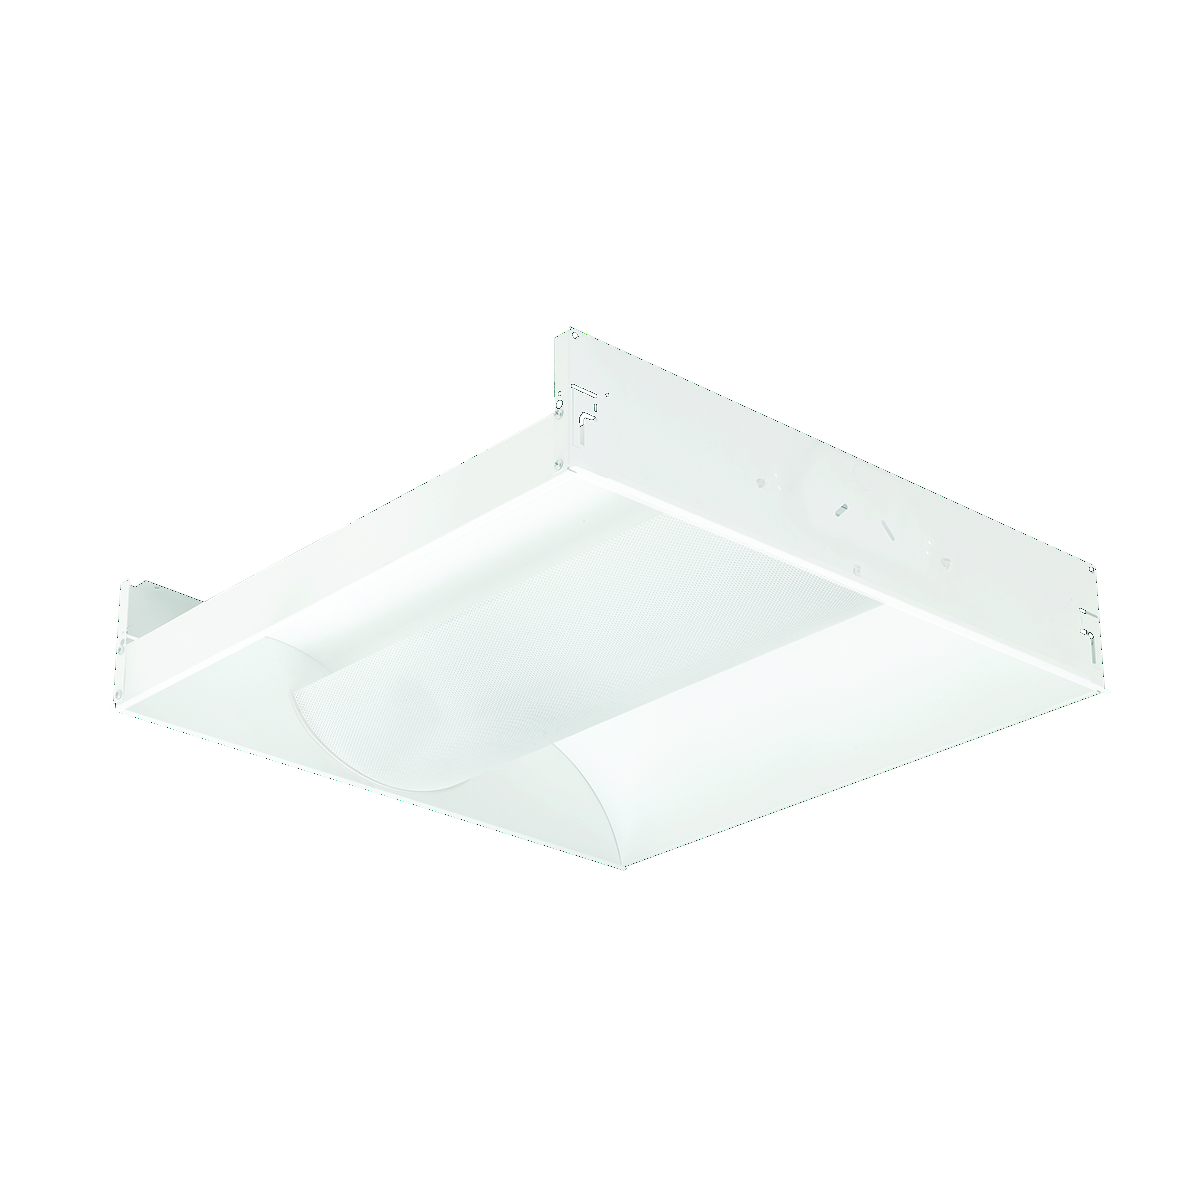 HUBBELL LIGHTING 2 FT x 4 FT, Number of Lamps: 3, 4 foot, T8: 32 watt fluorescent, Lamp Included: No, Metal perforated shield with overlay, 3-Lamp Electronic T8, Instant Start, 120-277 VAC.